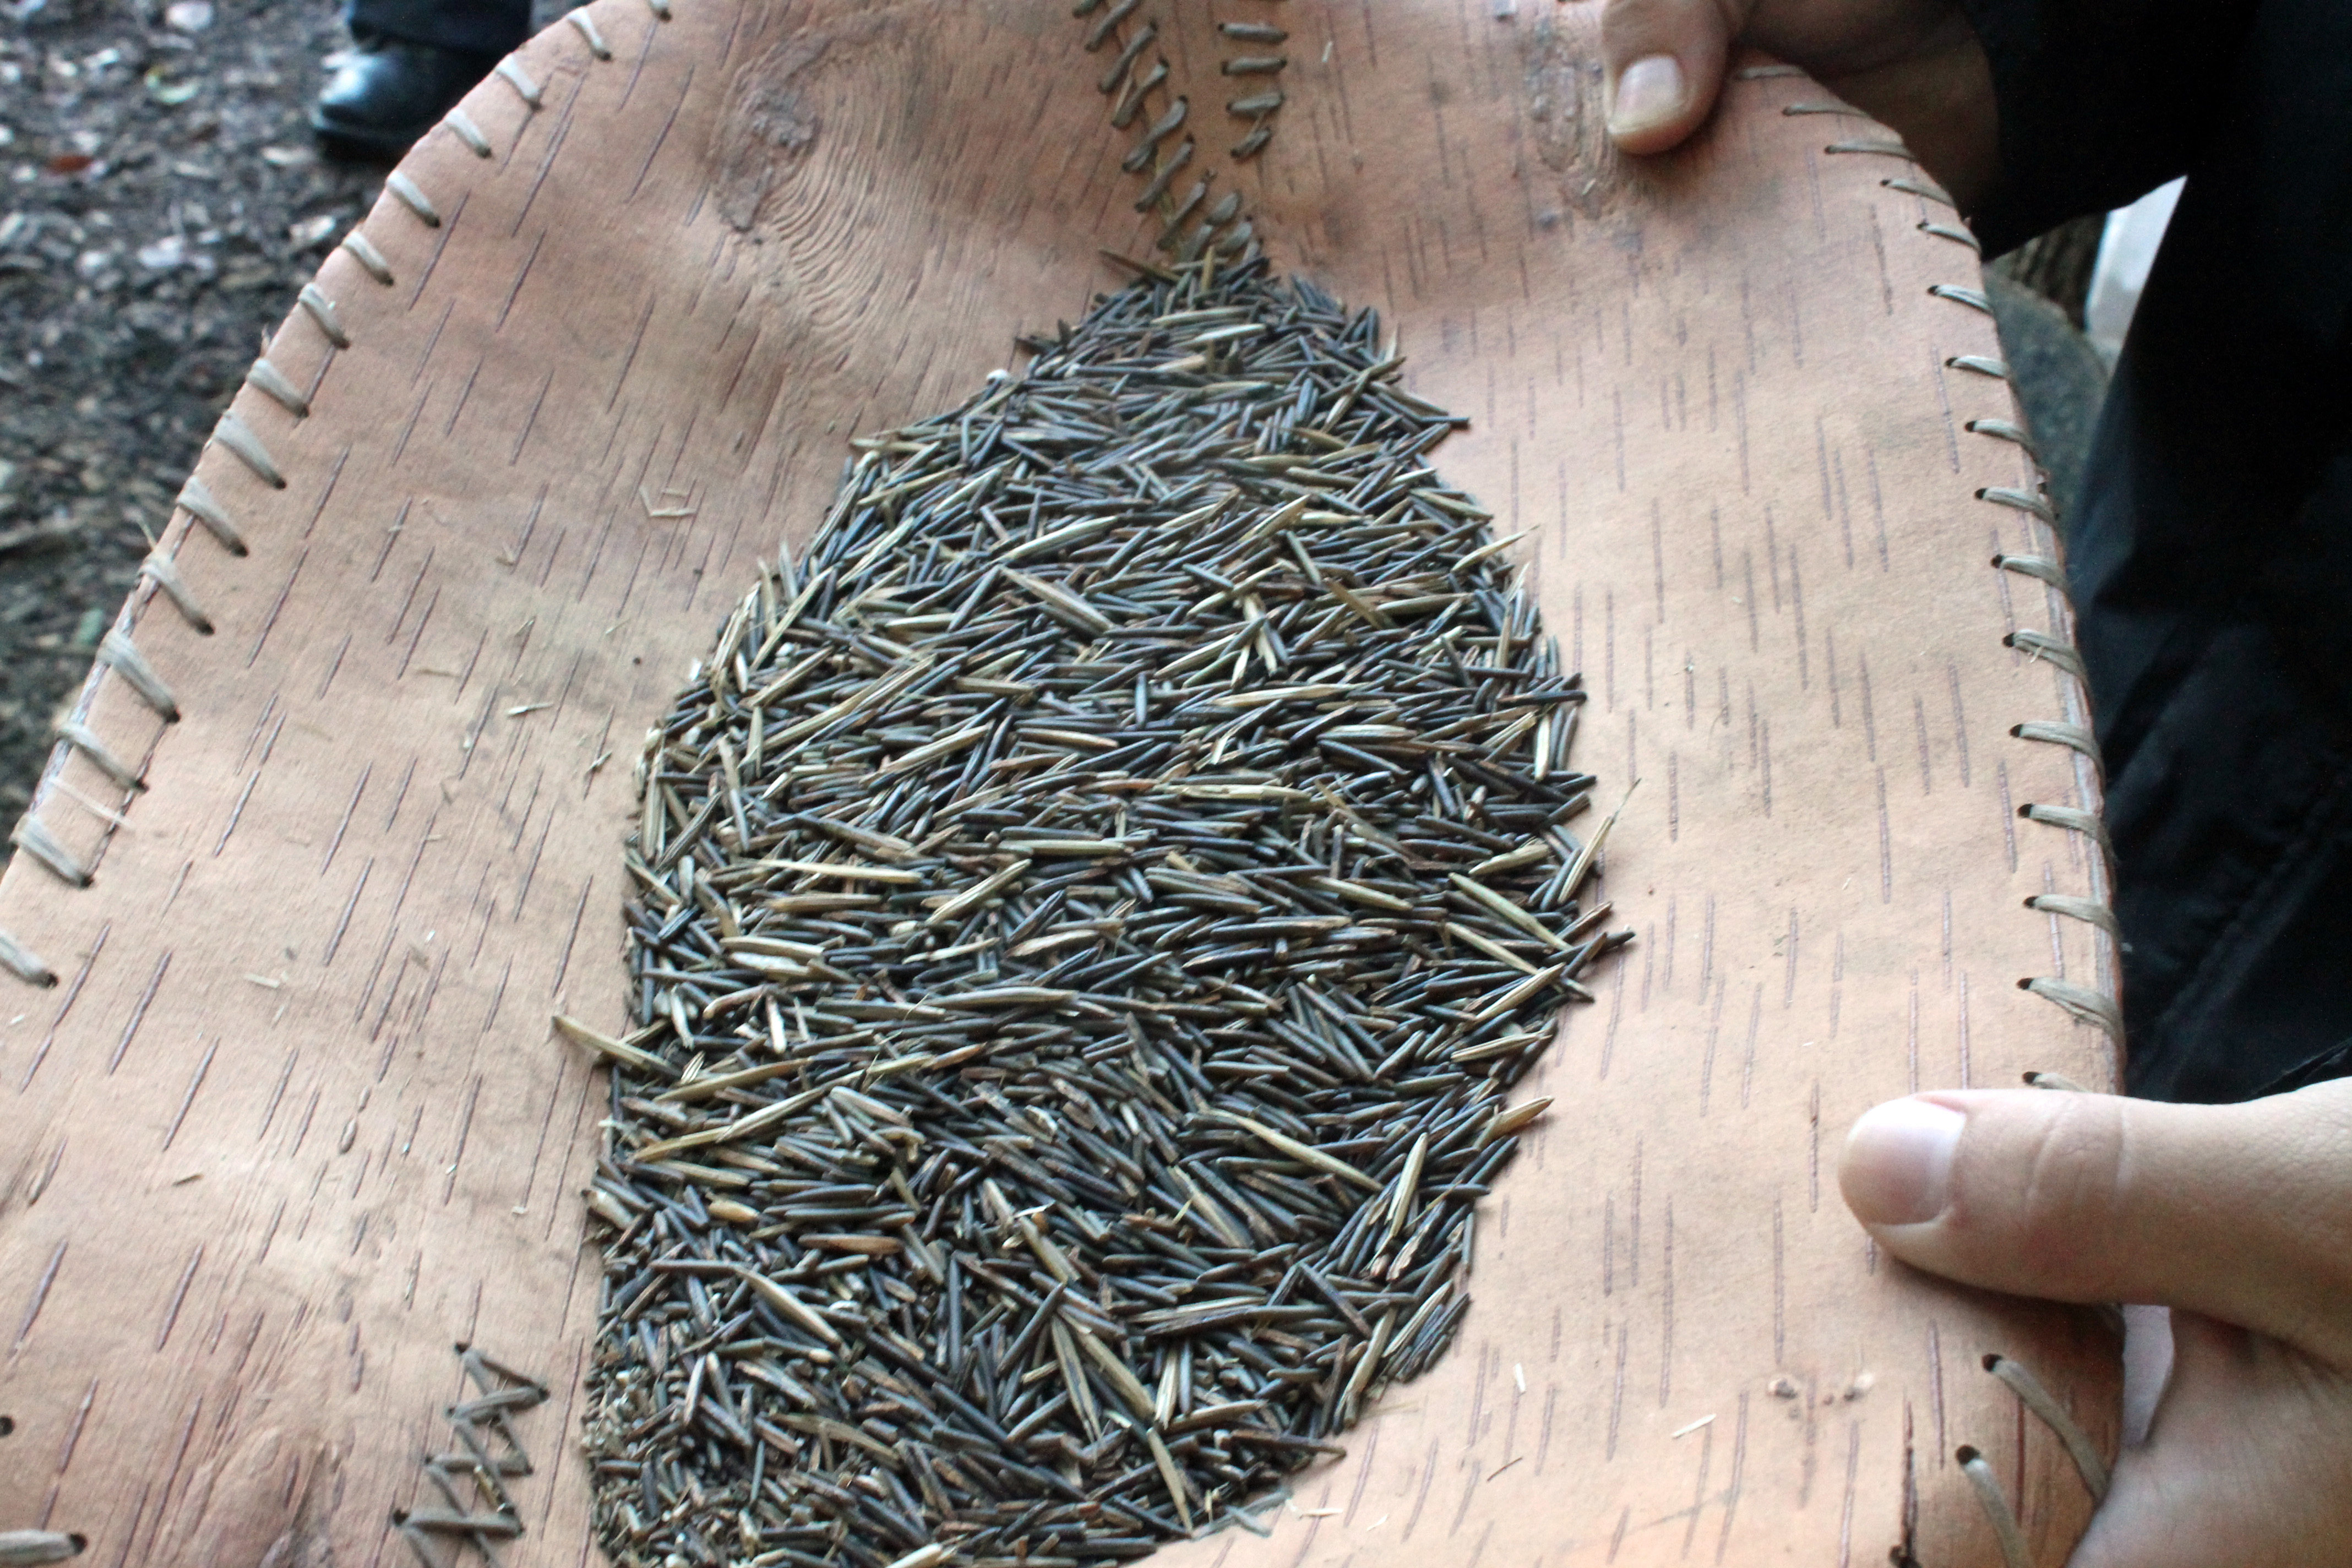 Grains of wild rice are processed in a light brown vessel